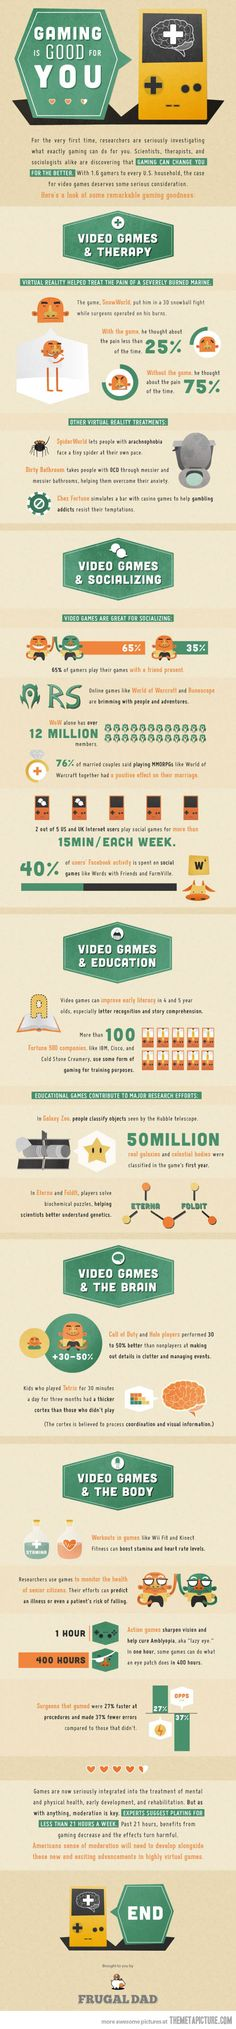 Gaming is good for you… Kinda makes me wish I were good at video games.